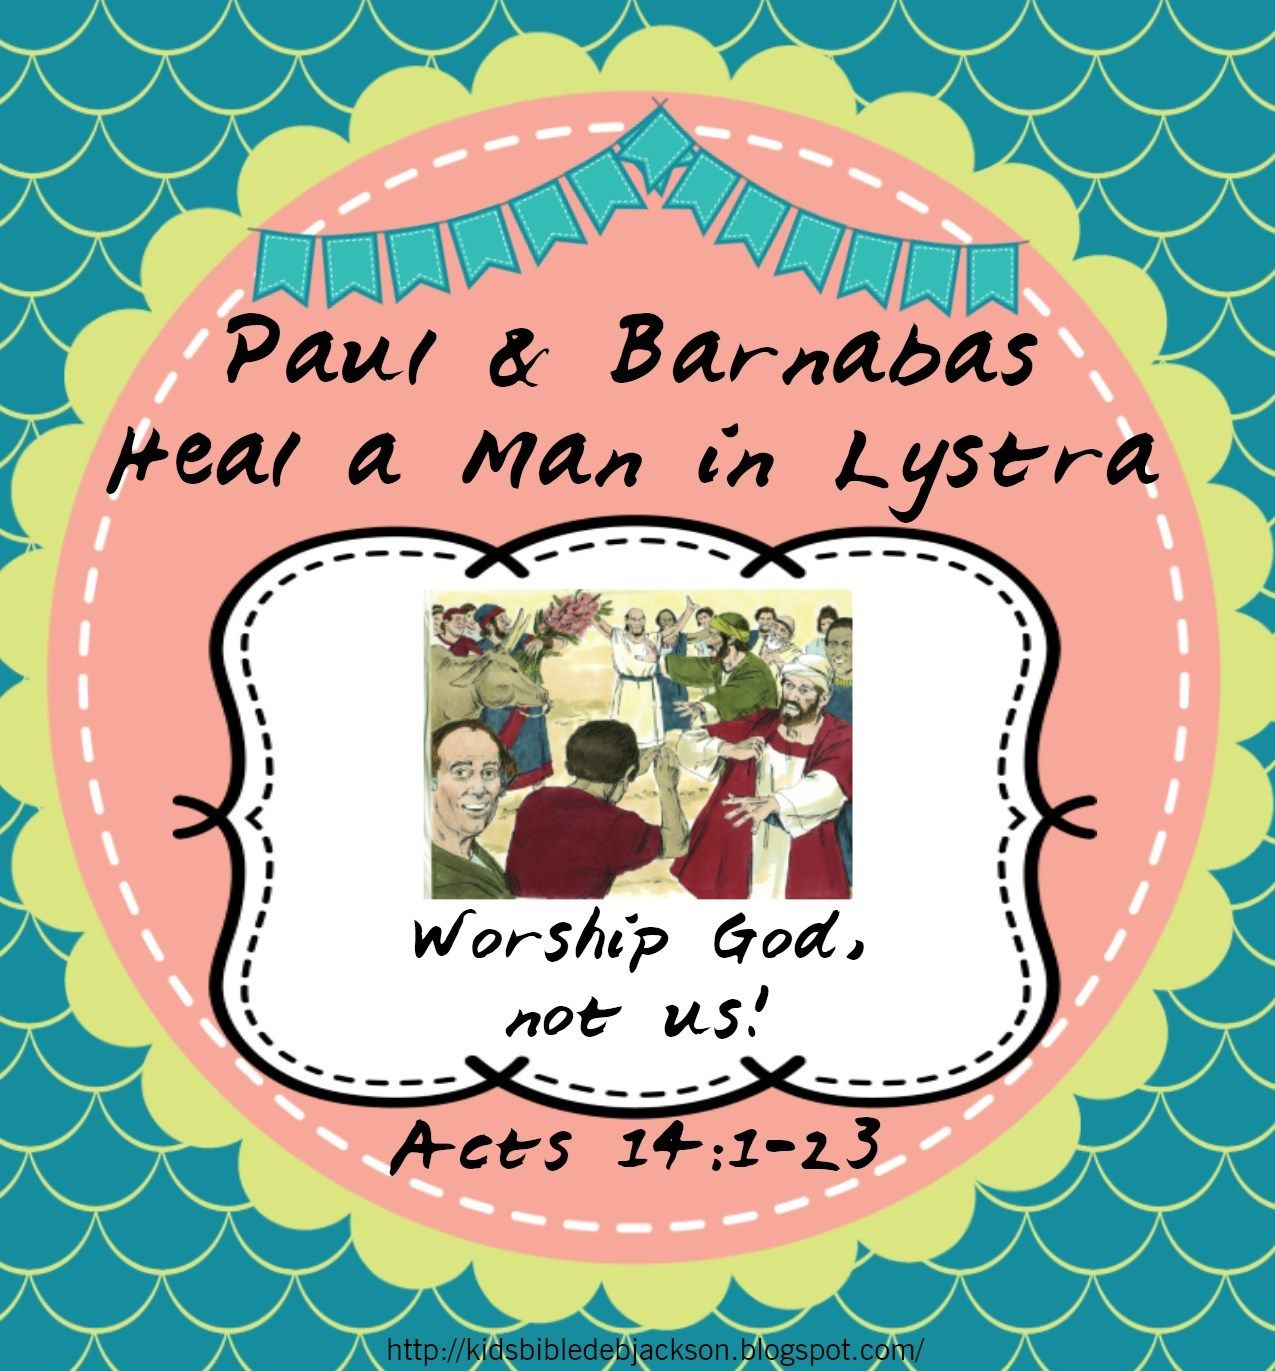 Lessons In Acts Paul And Barnabas Heal A Man Lystra